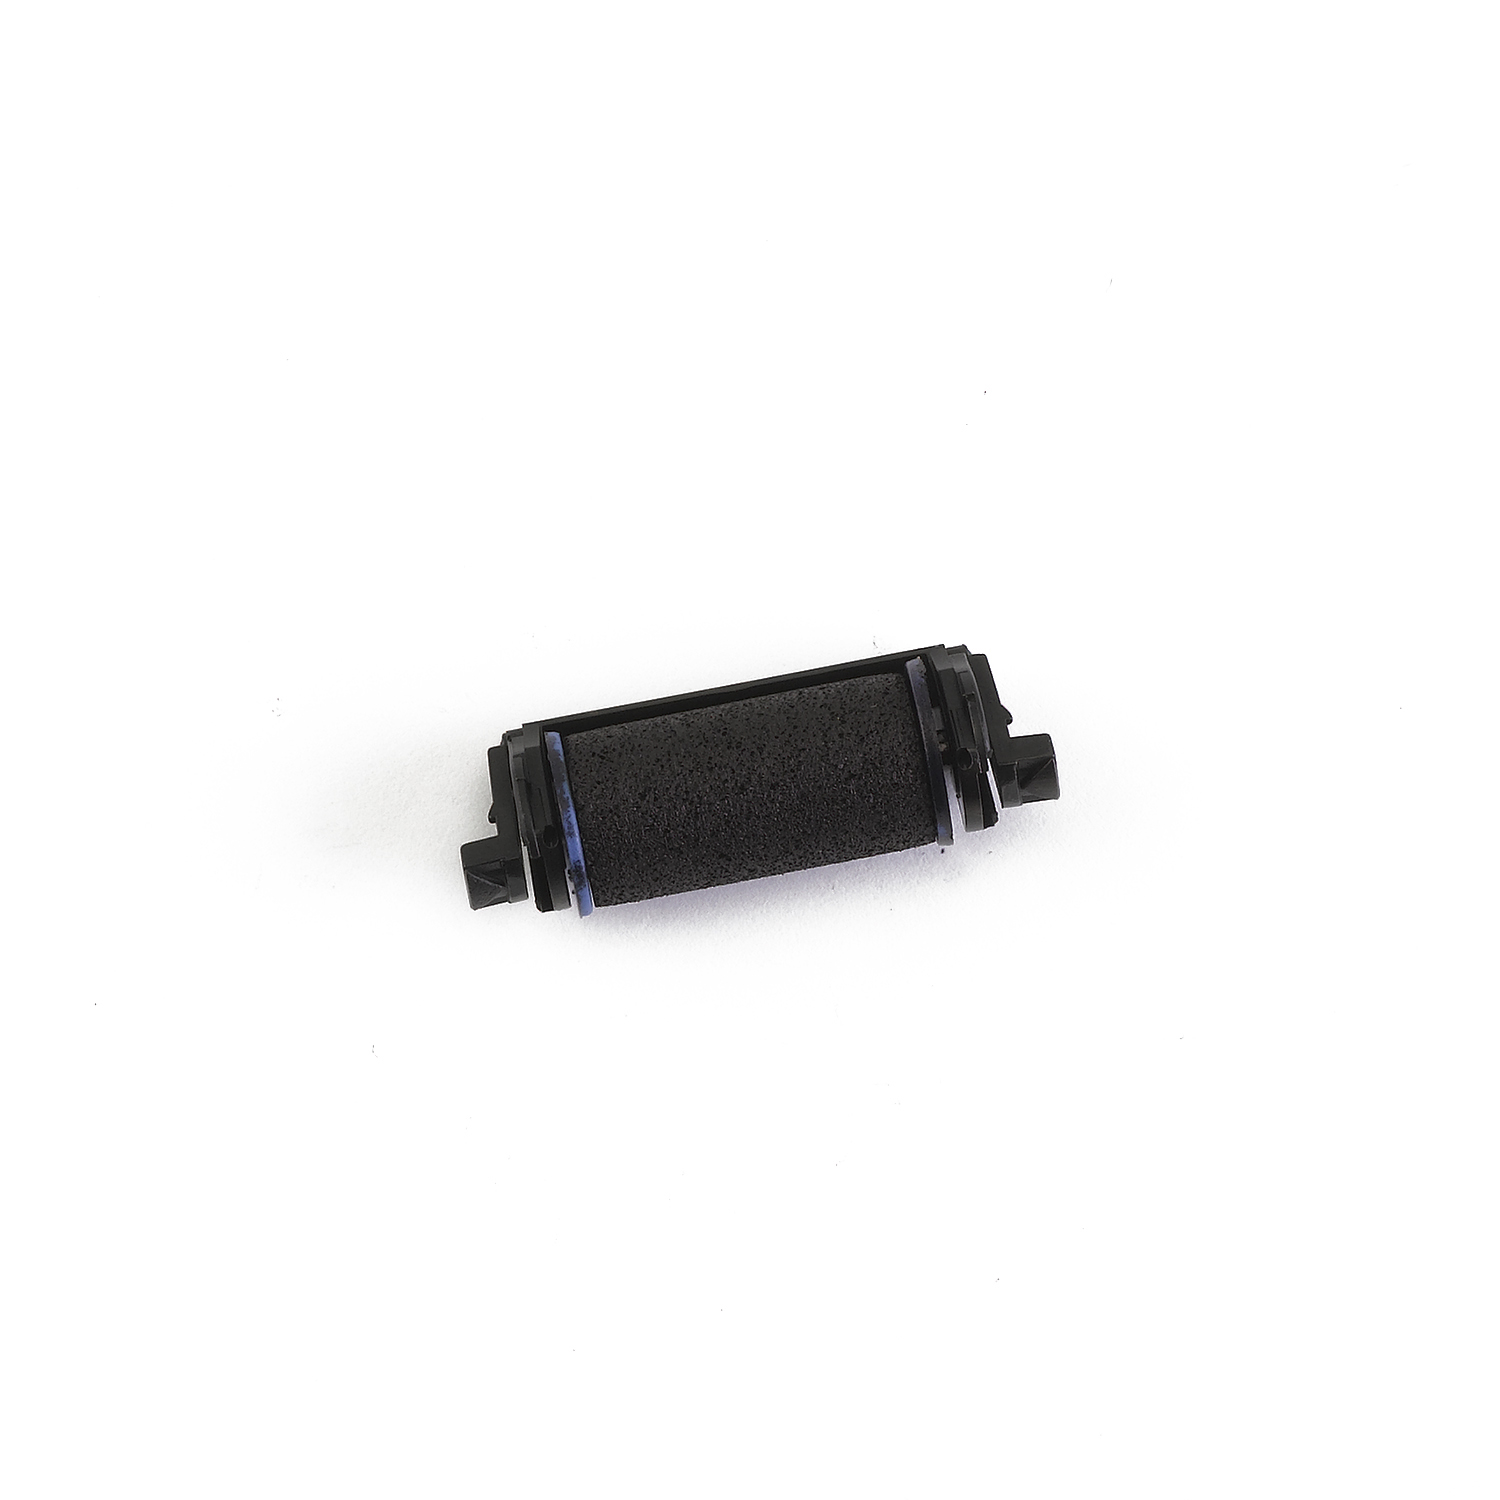 Replacement Ink Roller (2 Pack) - INK-31592